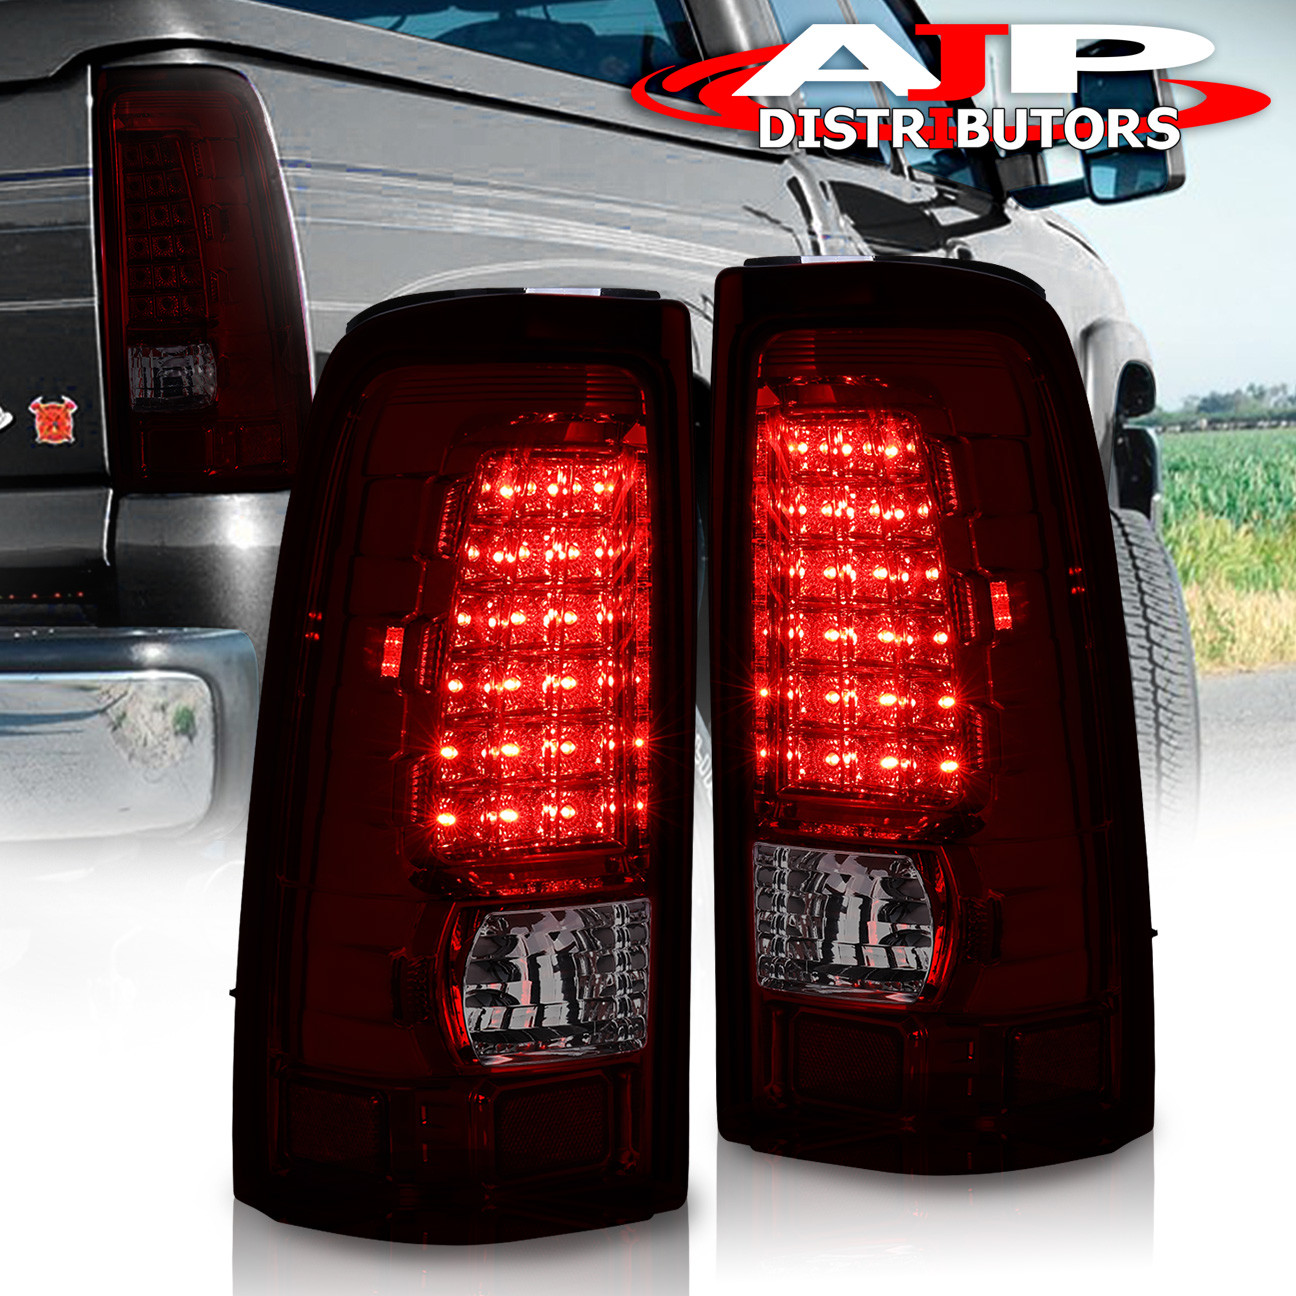 Details About For 99 06 Chevy Silverado 1500 2500 Hd Led Tail Lights Rear Lamps Smoked Red